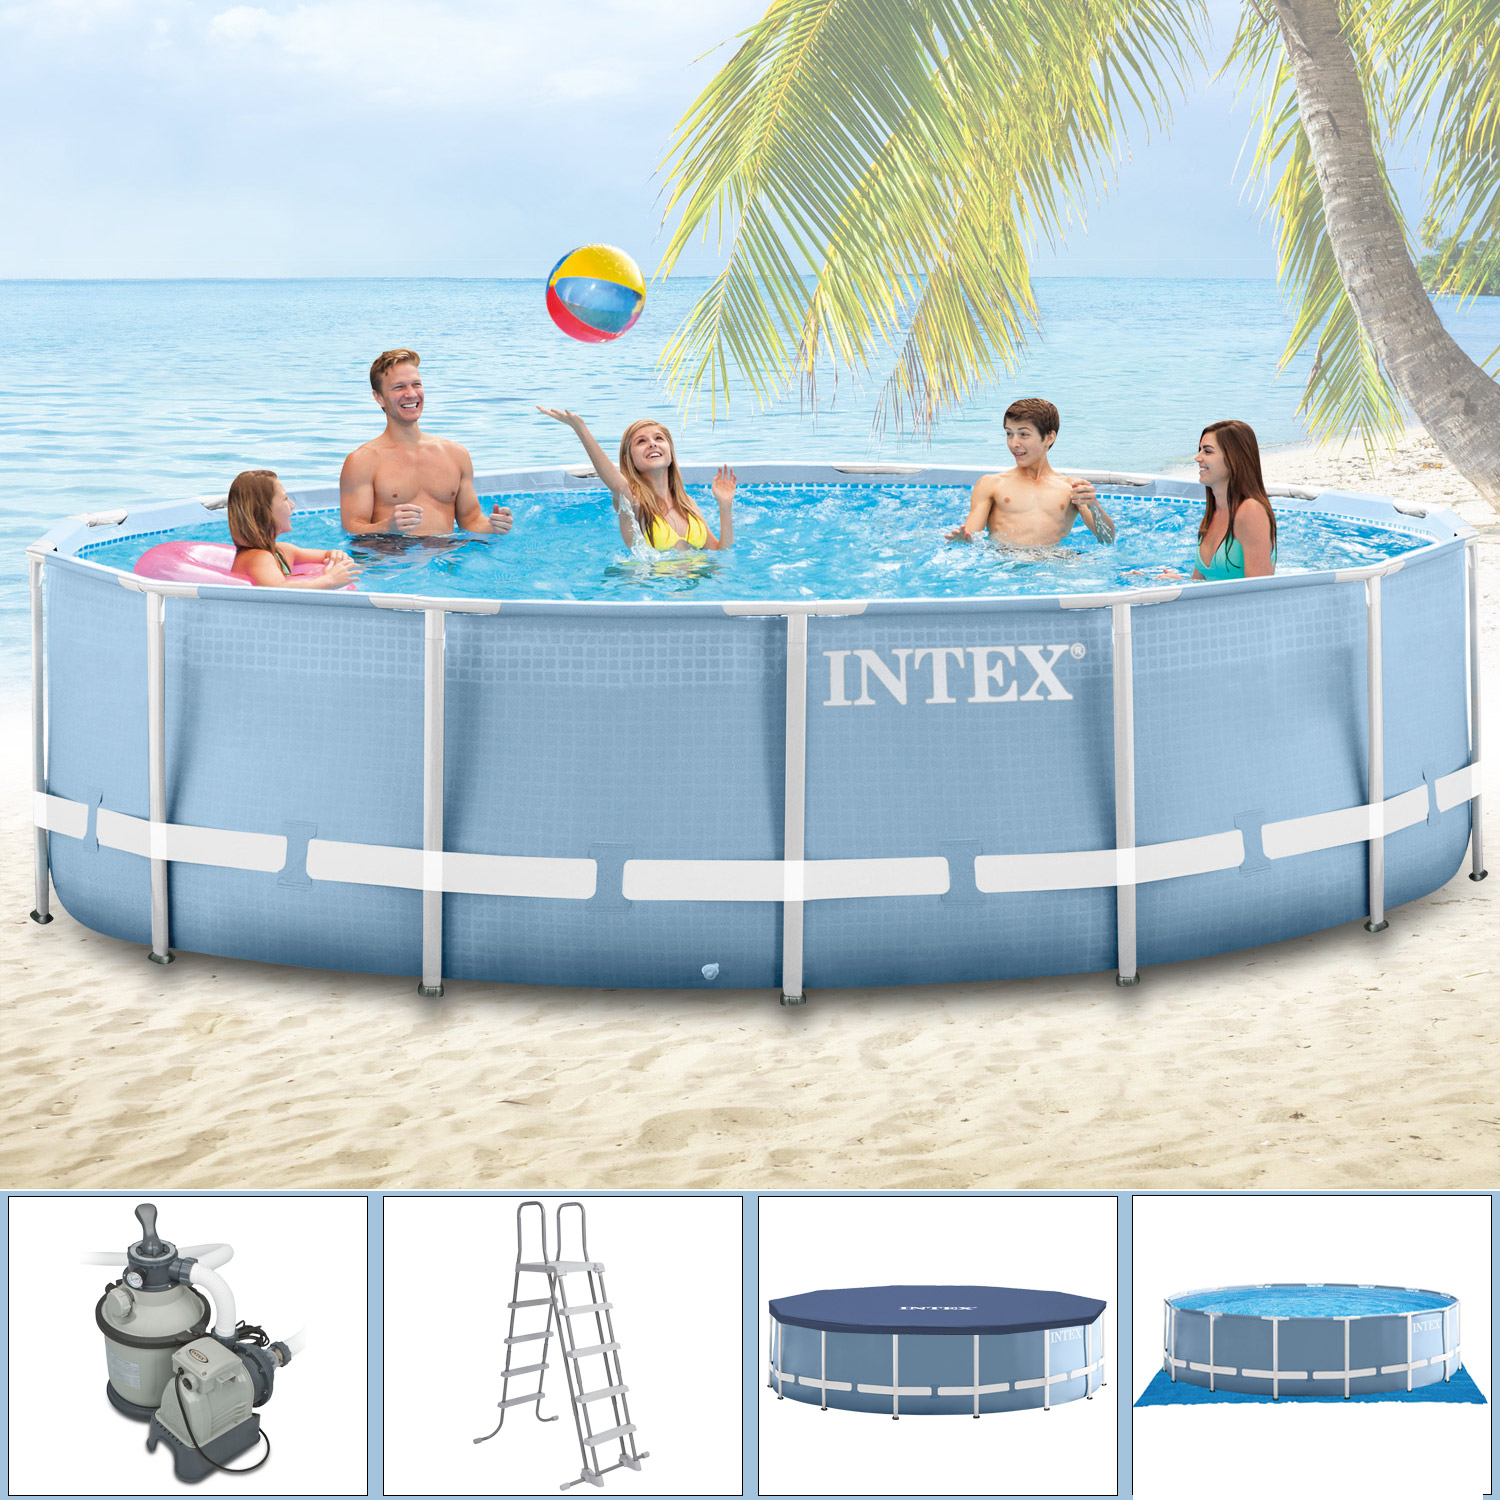 intex swimming pool frame 366x122 cm mit leiter sandfilter a plane und u plane. Black Bedroom Furniture Sets. Home Design Ideas